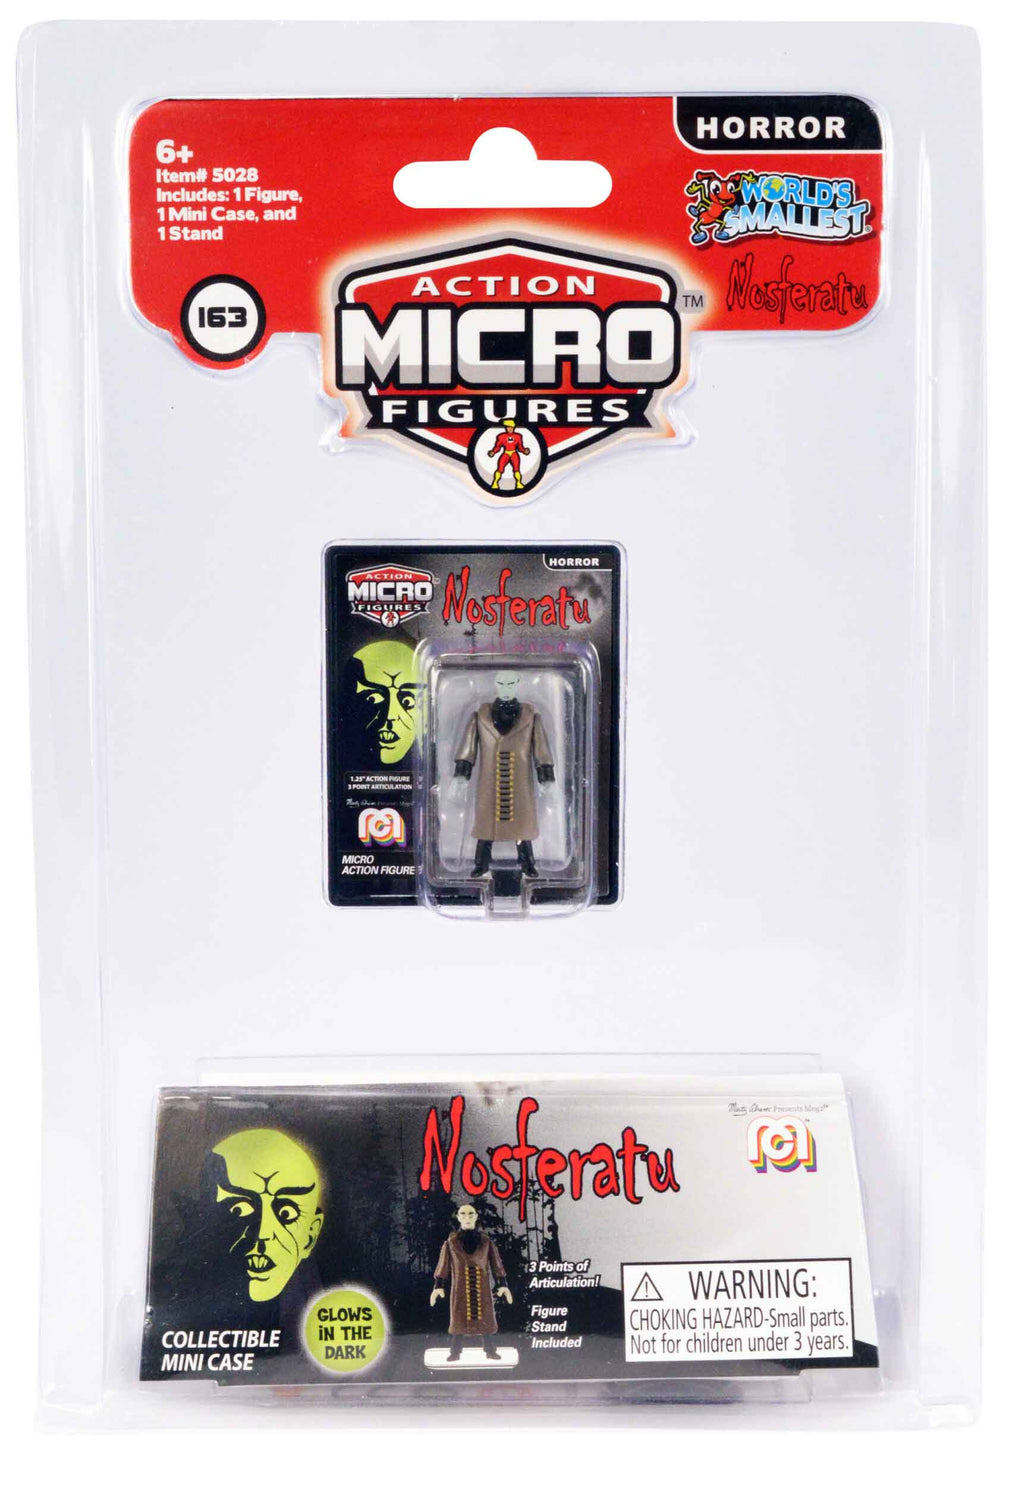 World's Smallest Mego Horror Micro Action Figures – (Nosferatu)